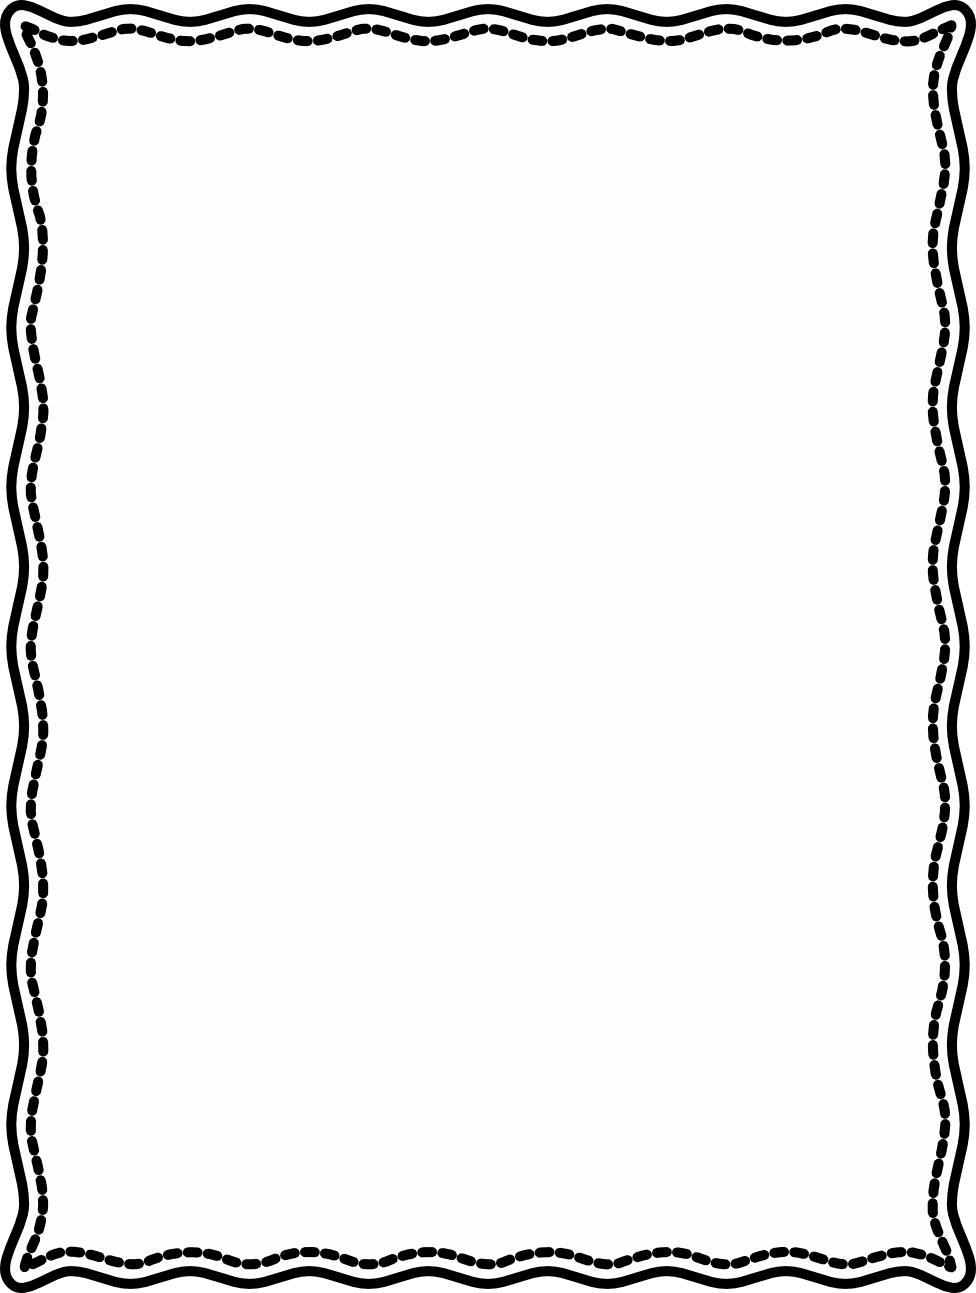 976x1293 Drawing Frame Free Download